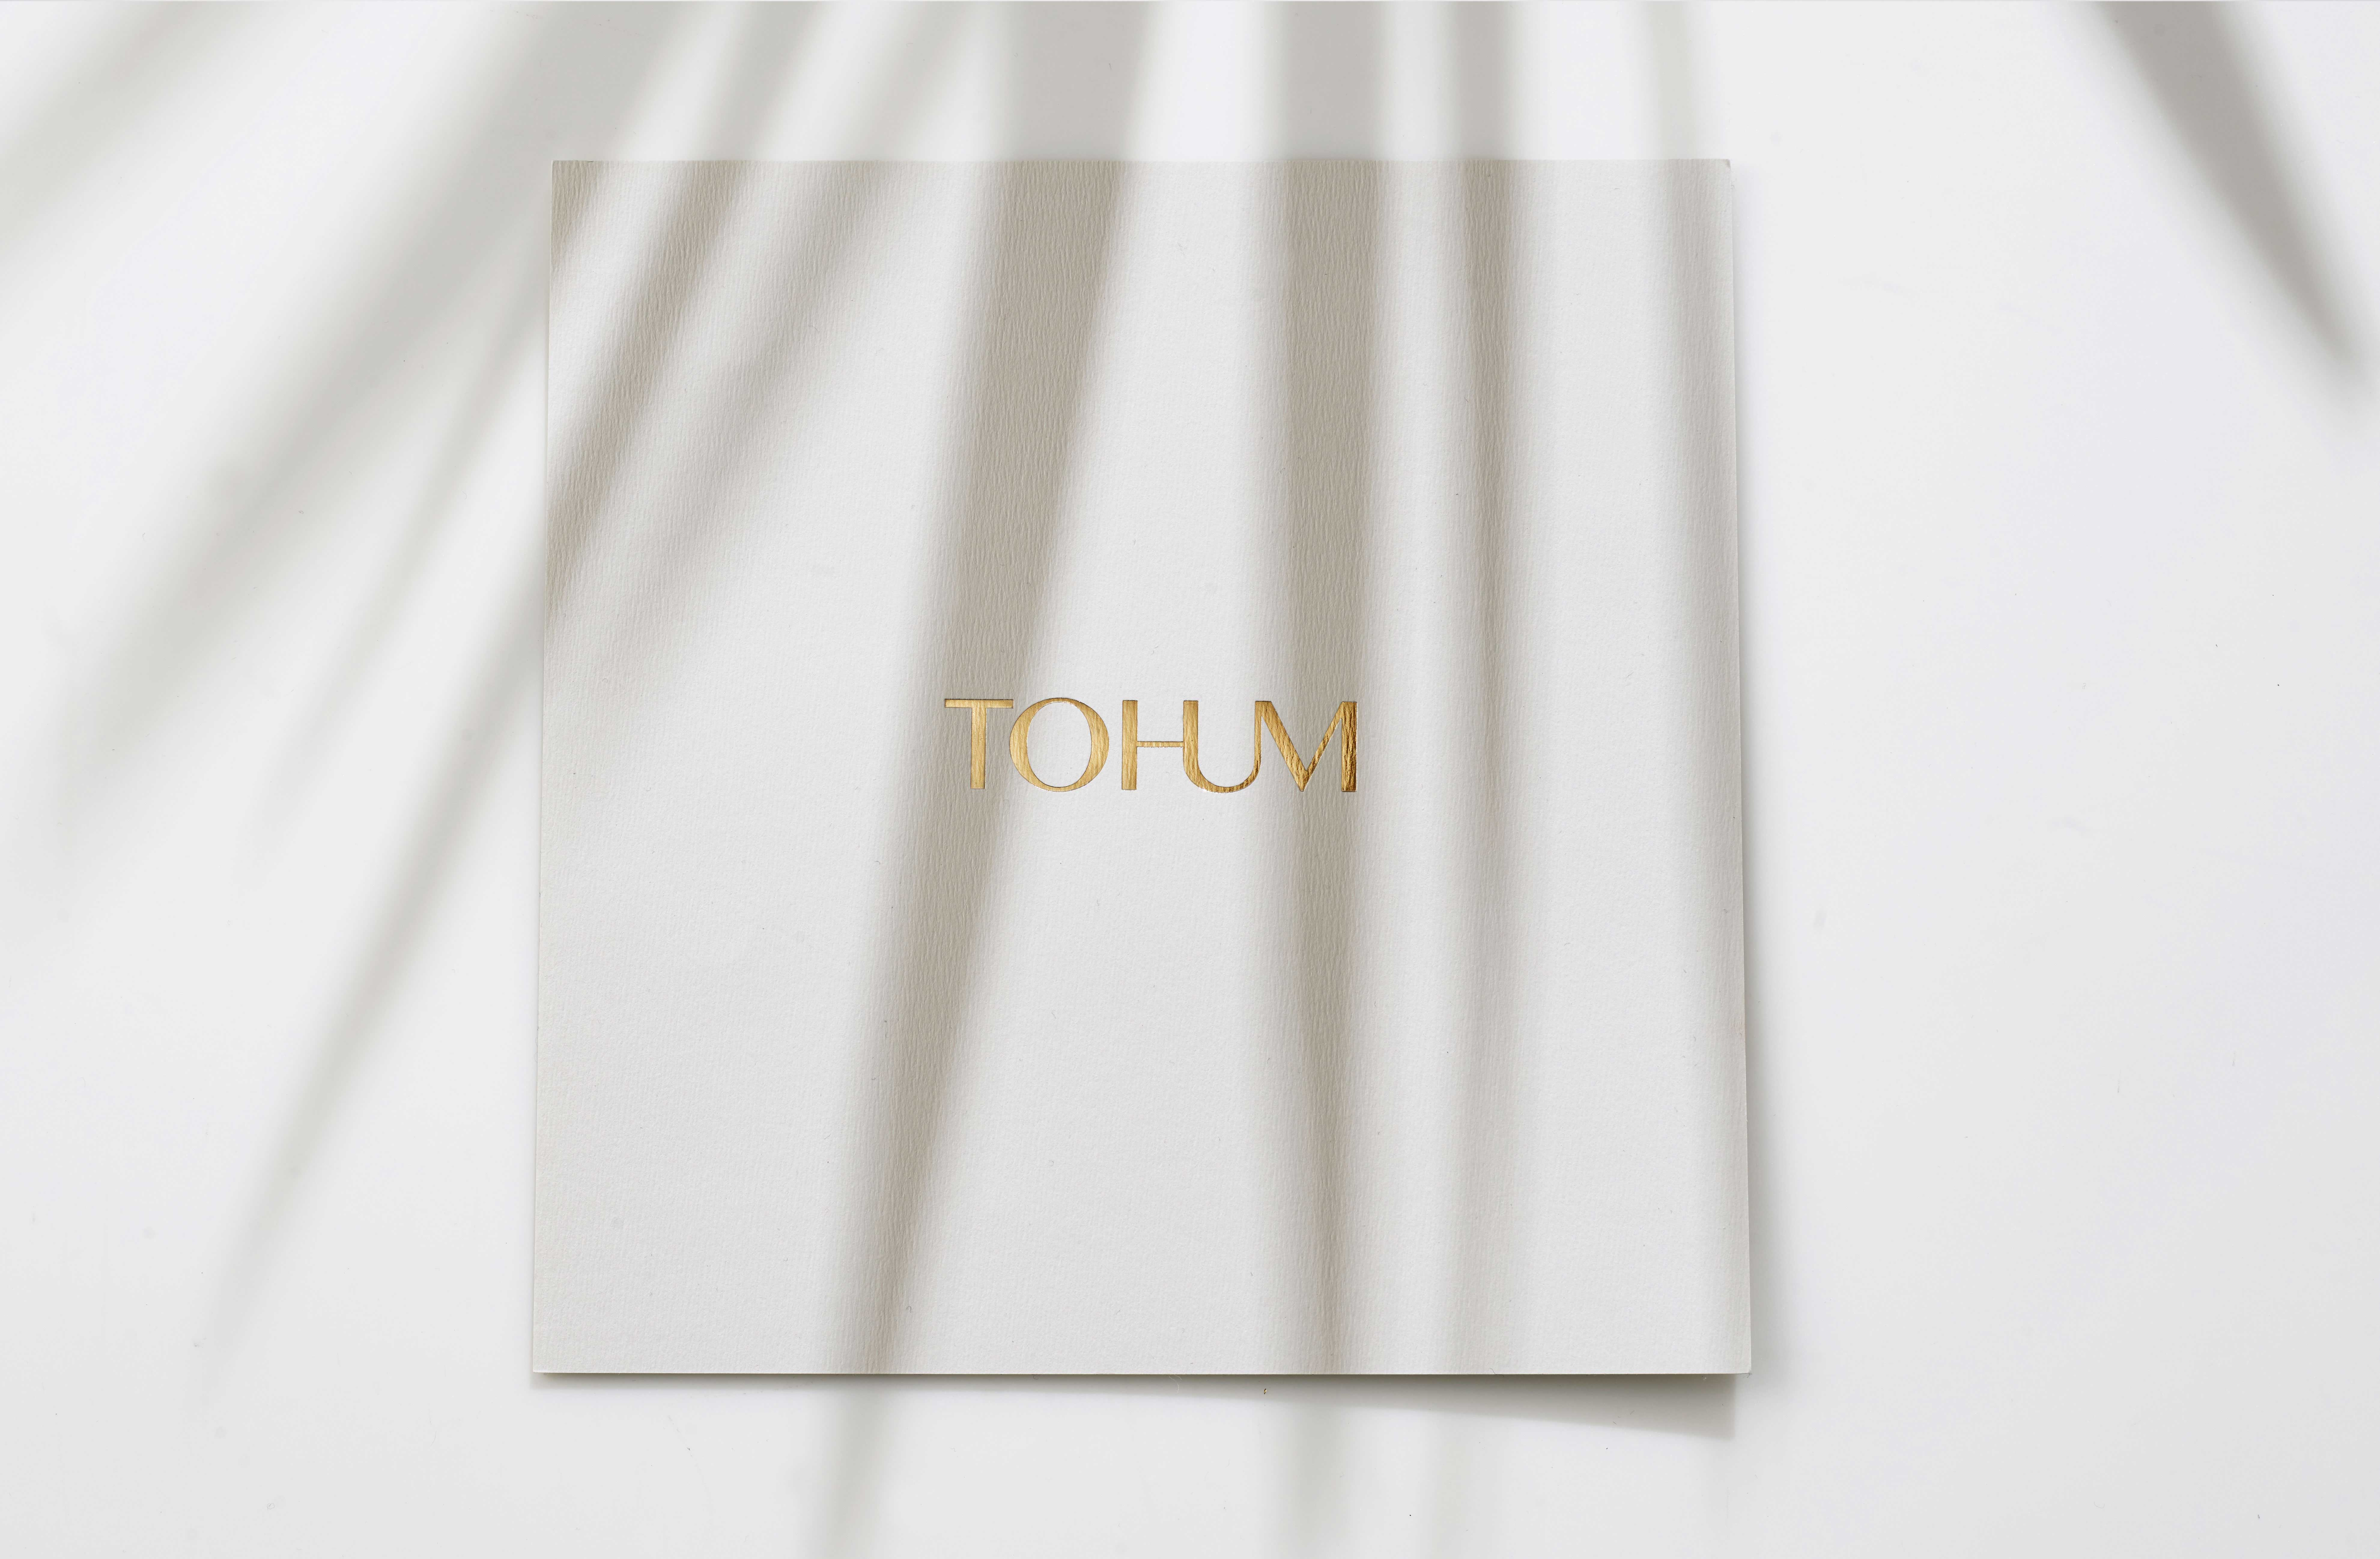 Pearlfisher Creates New Packaging Design and Brand Identity for Tohum